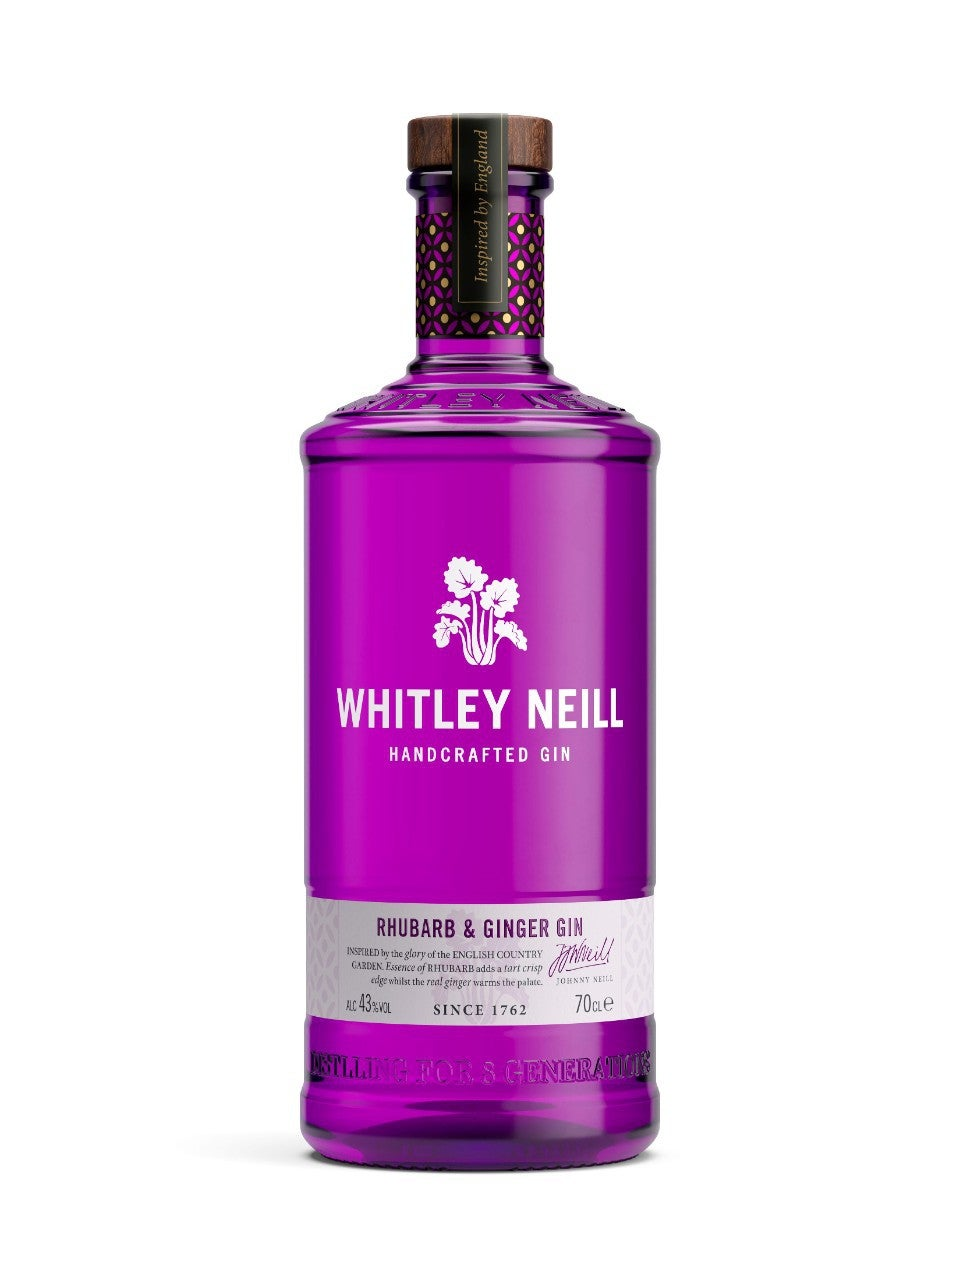 Whitley Neil Gin Rhubarb and Ginger Gin Best Booze for your Buck